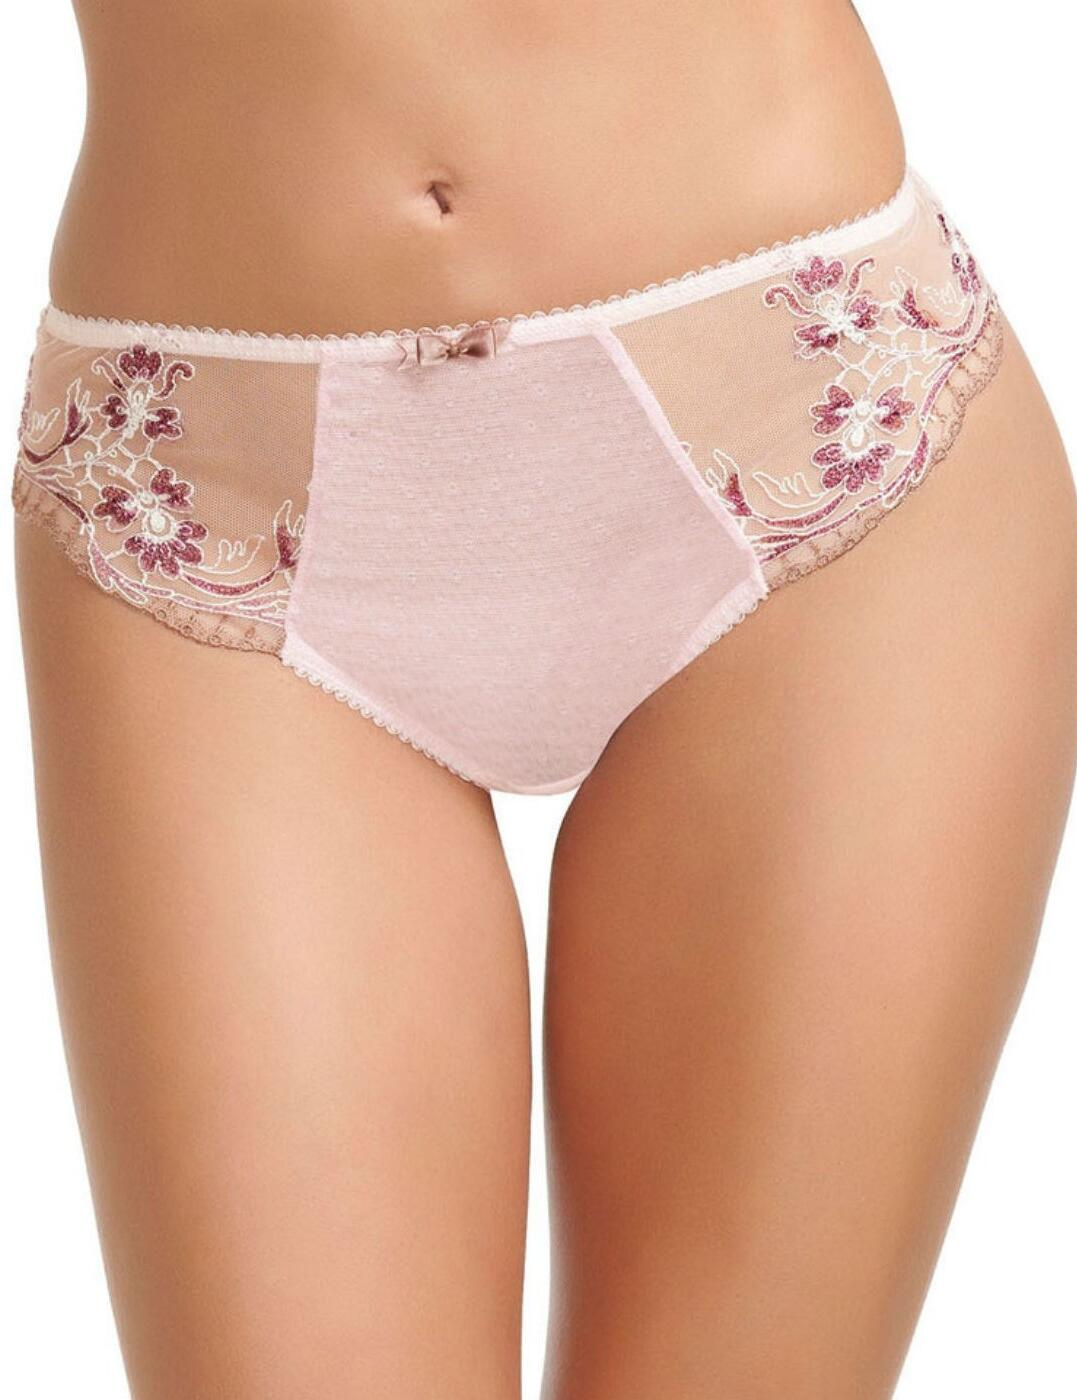 New Fantasie Lingerie Melissa Brief Knicker Pant 2935 Soft Pink Size Small